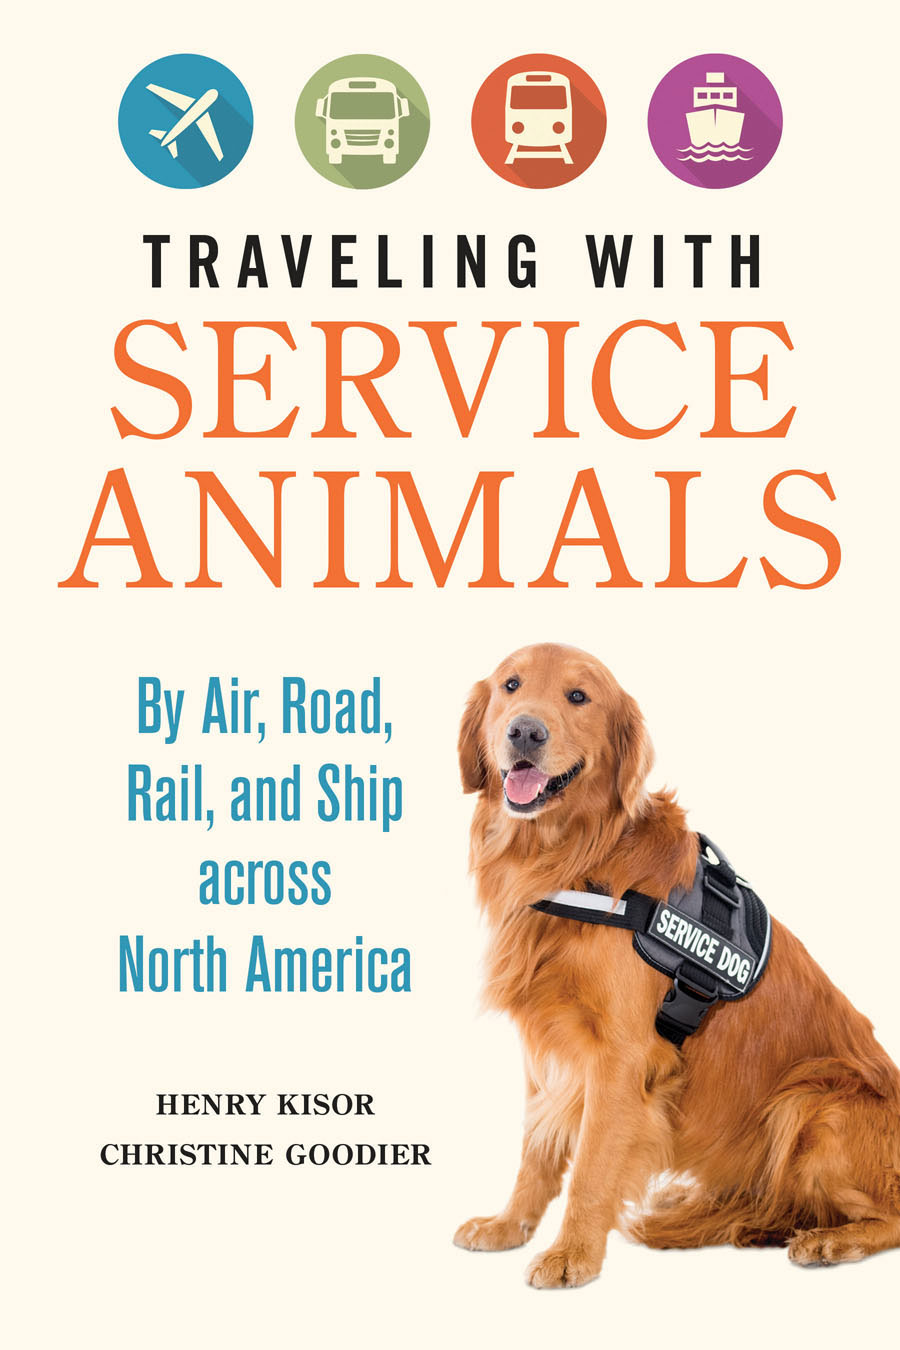 Traveling With Service Animals by Henry Kisor and Christine Goodier